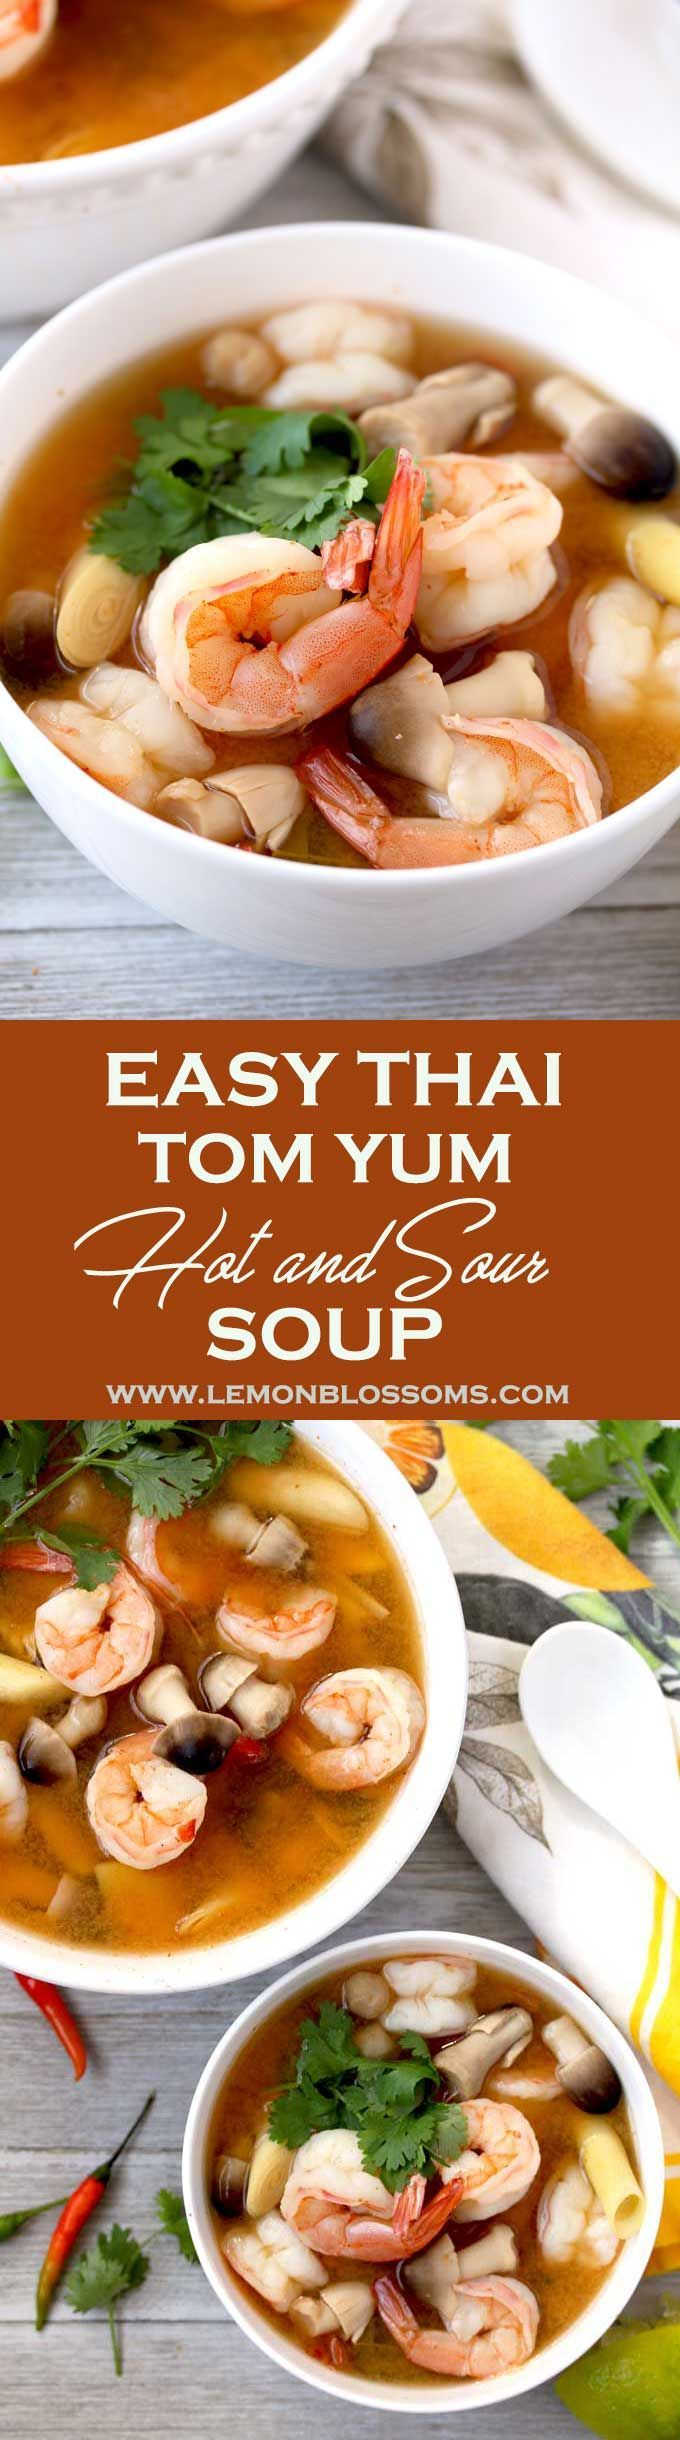 Thai Tom Yum Soup (Thai Hot and Sour Soup) is one of the easiest and quickest soups to make. The full flavored broth is infused with lemongrass, ginger and Thai chiles. Plump Shrimp, straw mushrooms and fresh cilantro complete this delicious and warming soup. #Thai #soup #tomyum #hotandsour #easy via @lmnblossoms